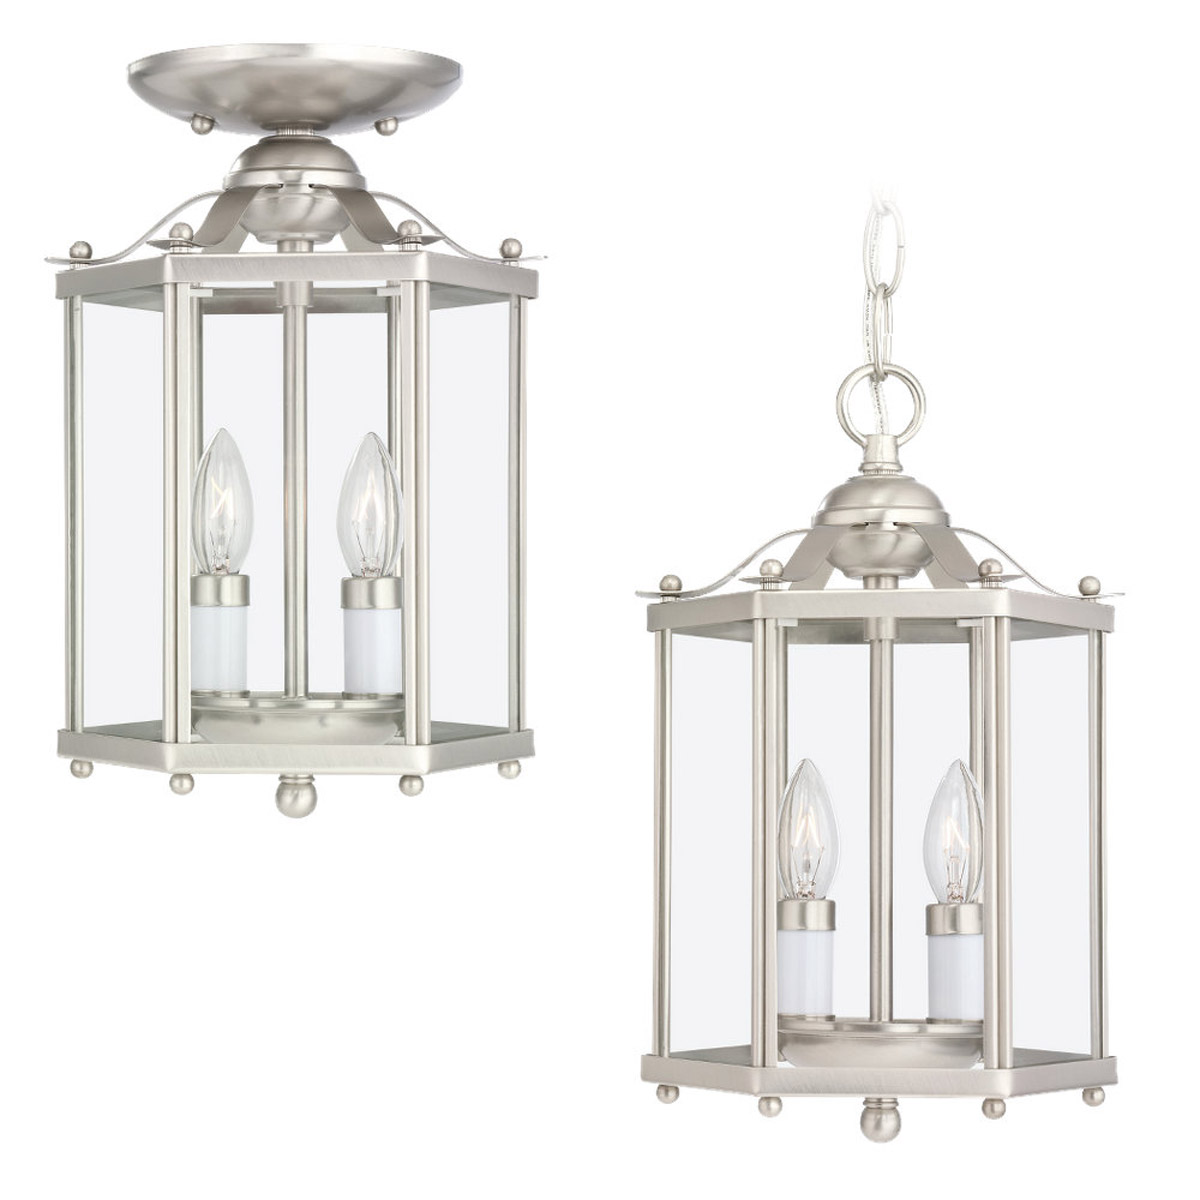 Sea Gull Lighting Bretton 2 Light Pendant Convertible in Brushed Nickel 5232-962 photo